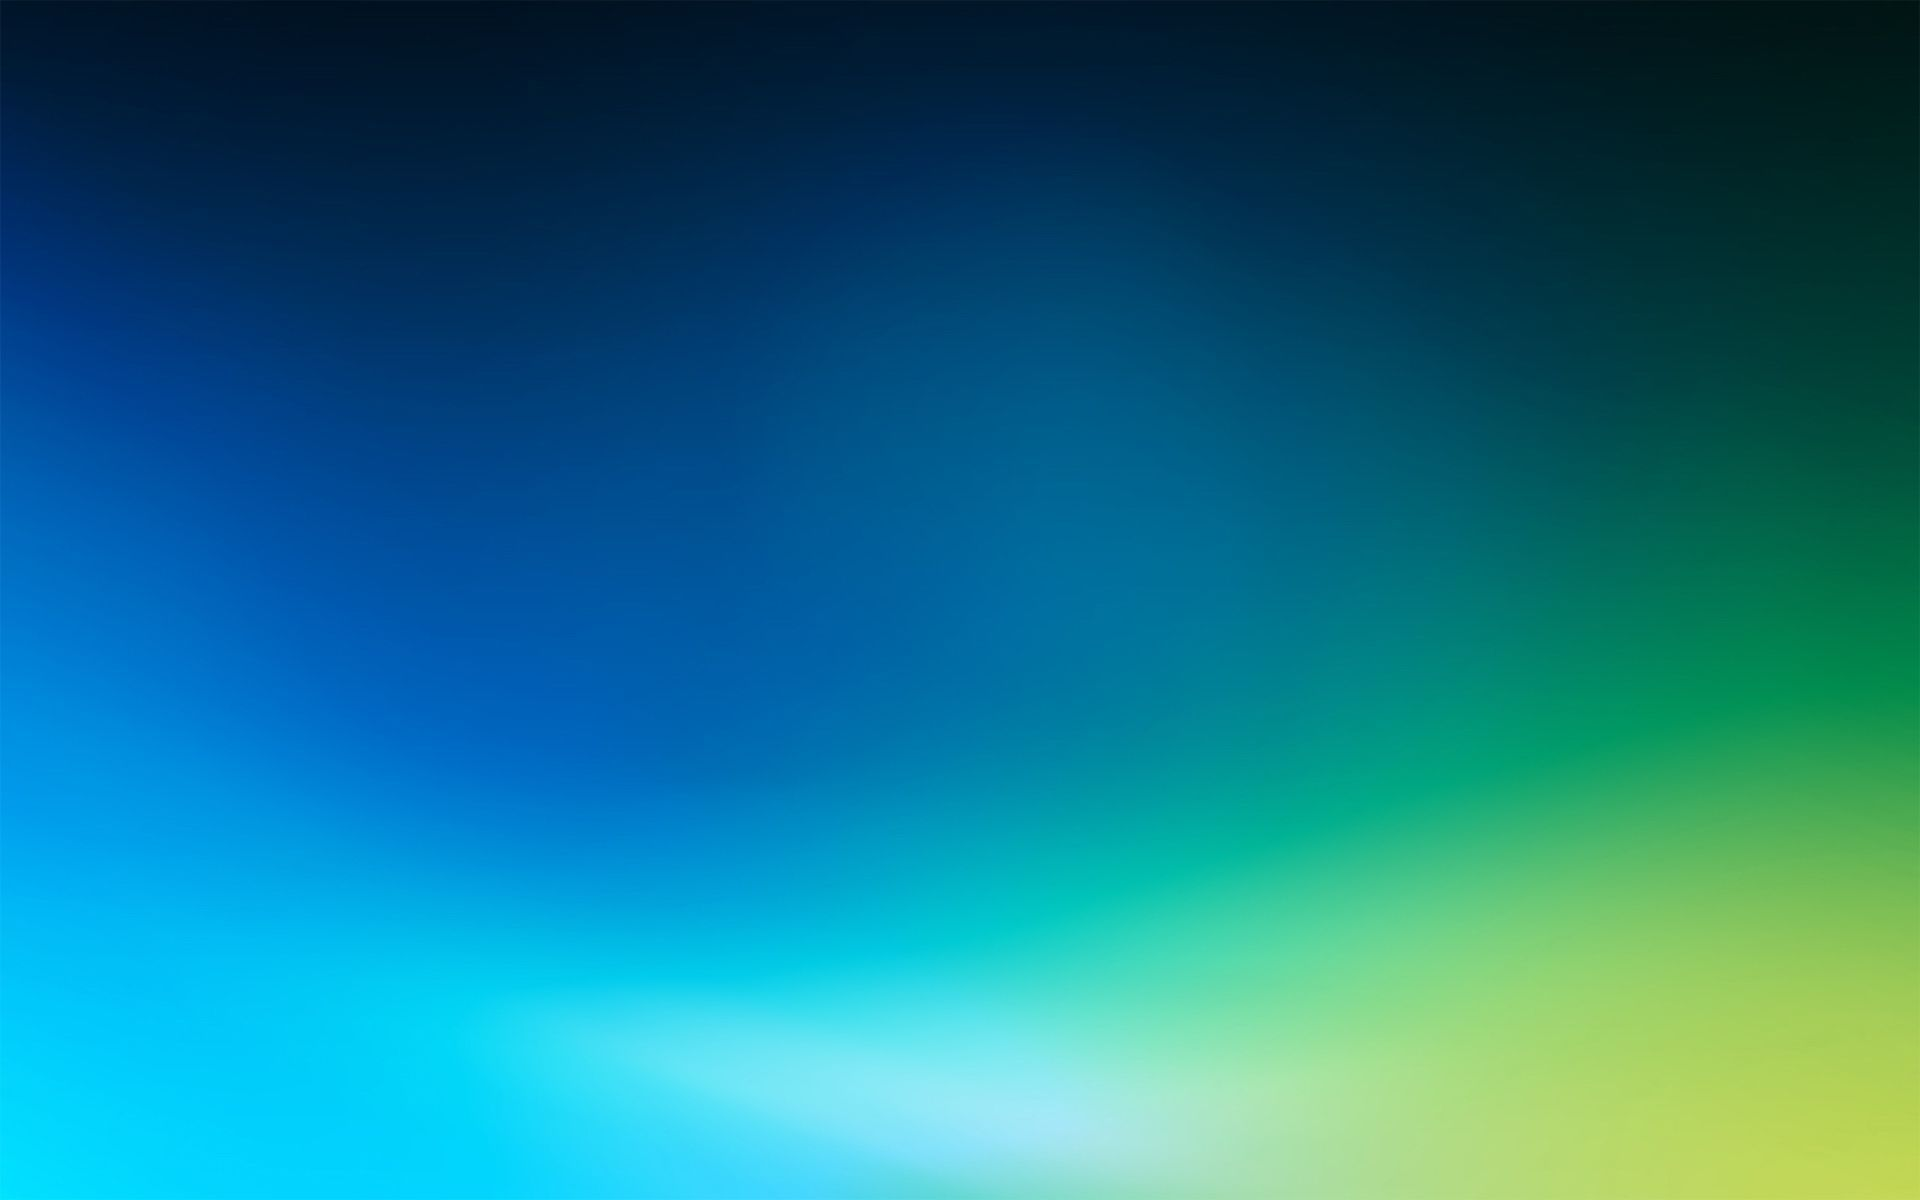 Beautiful Gradient Wallpaper